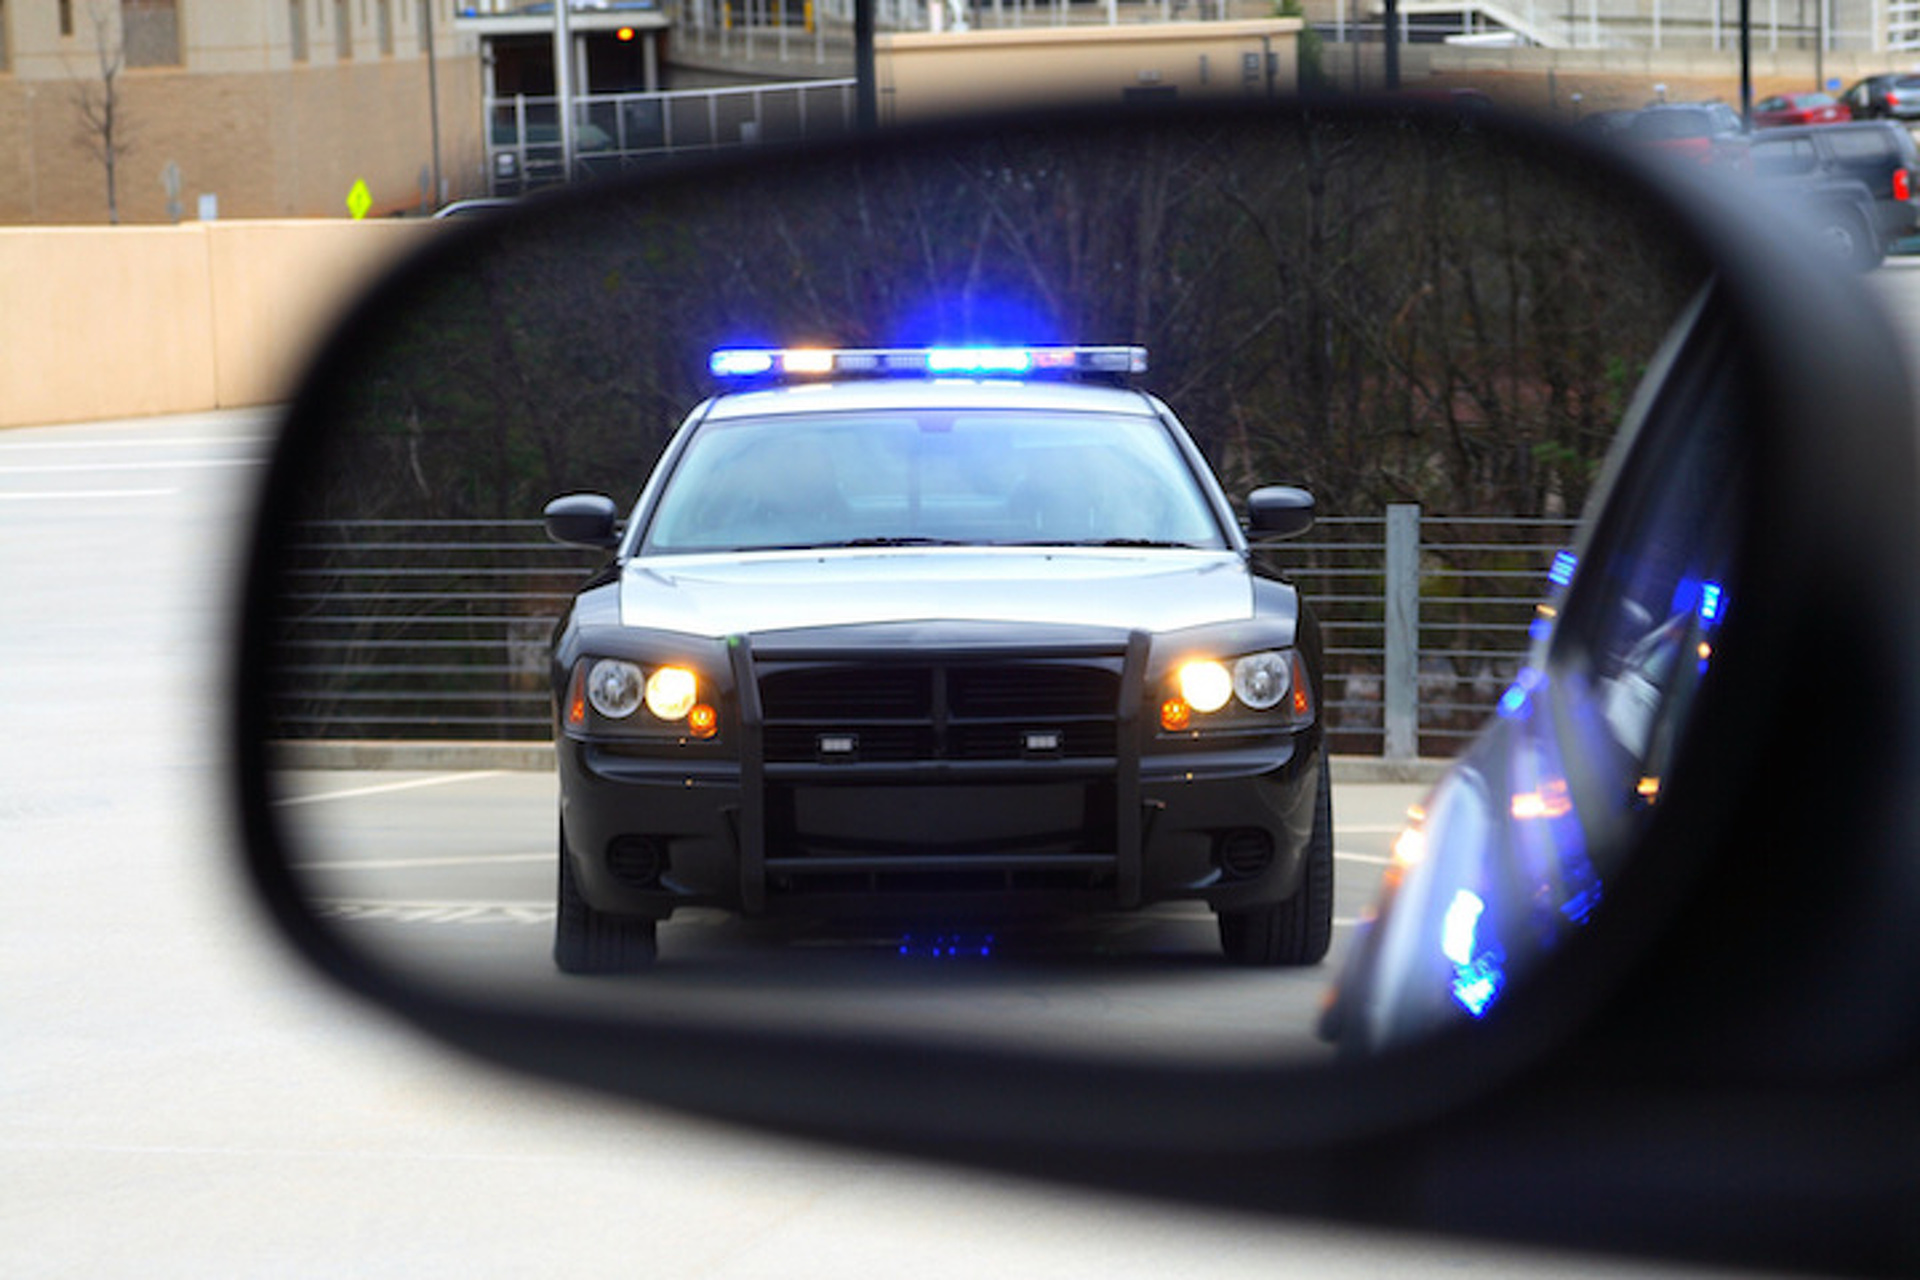 Should Police Be Able to Stop a Self-Driving Car in a High-Speed Chase?